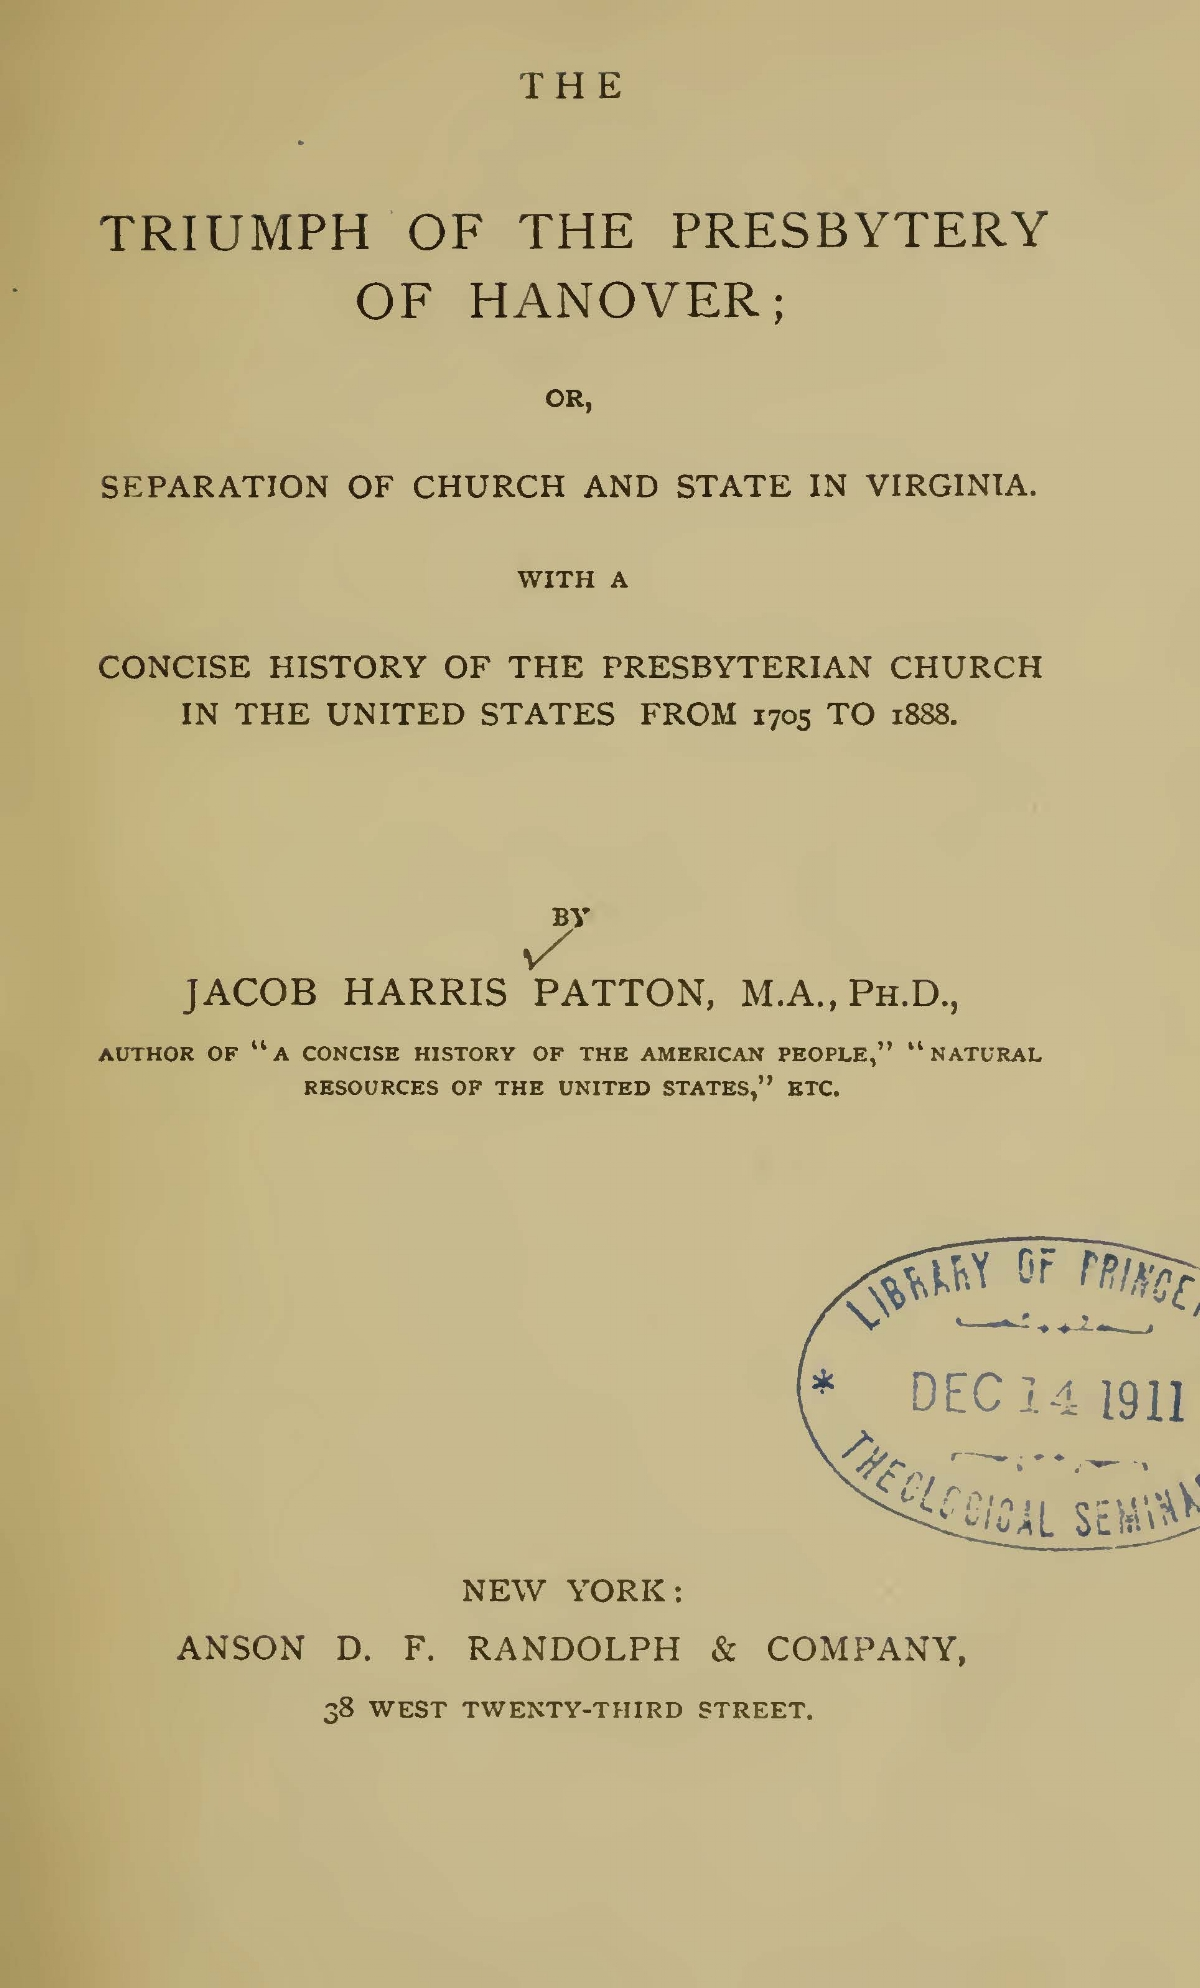 Patton, Jacob Harris, The Triumph of the Presbytery of Hanover Title Page.jpg